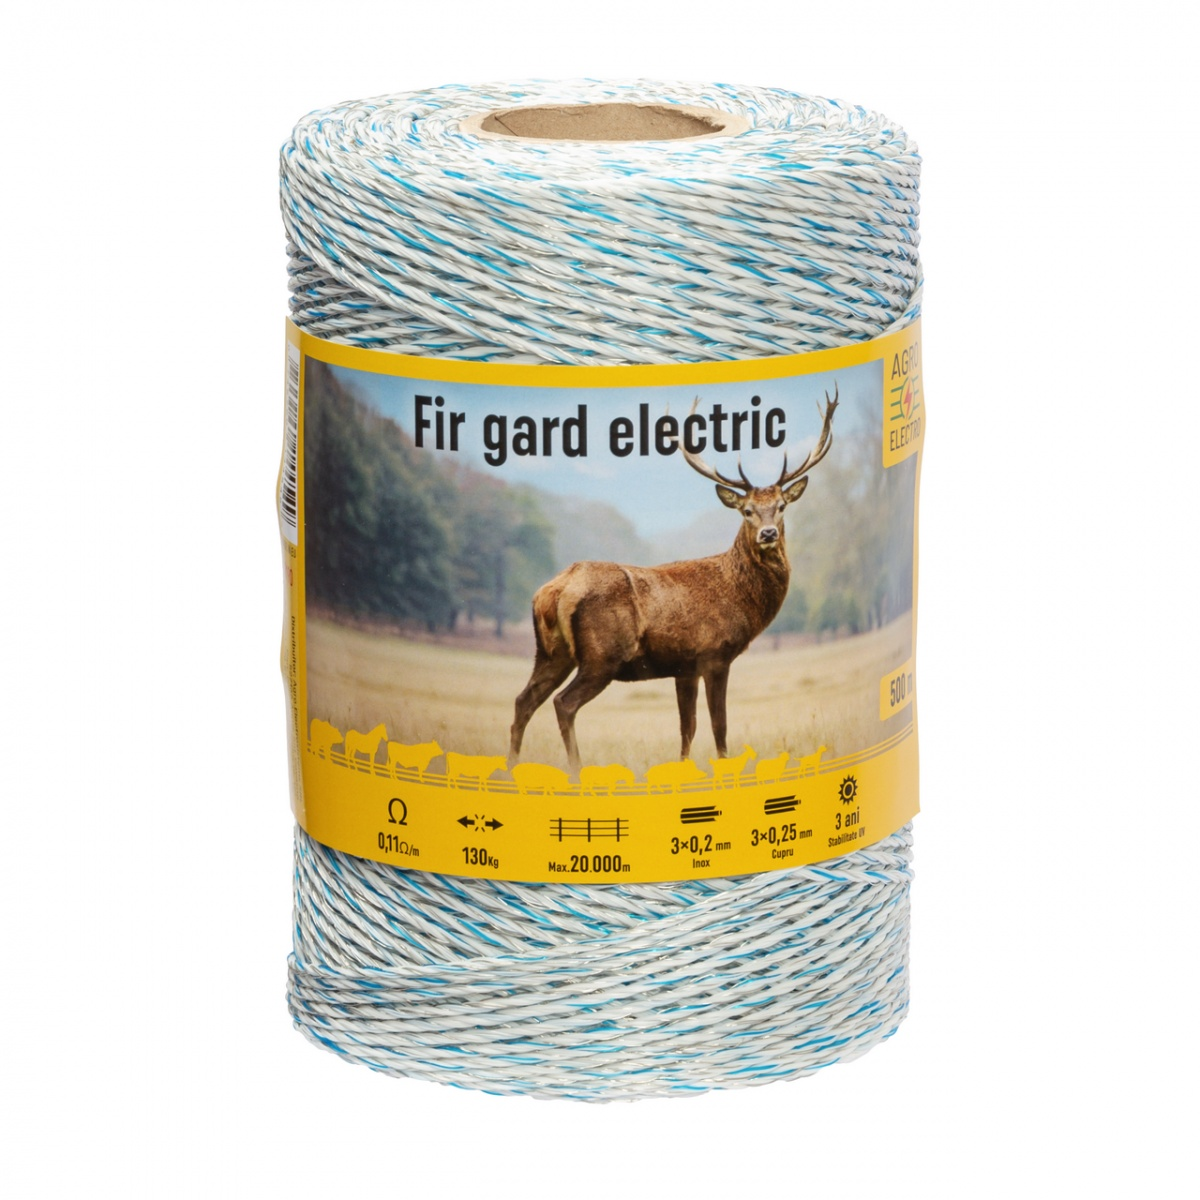 Fir gard electric - 500 m - 130 kg - 0,11 Ω/m